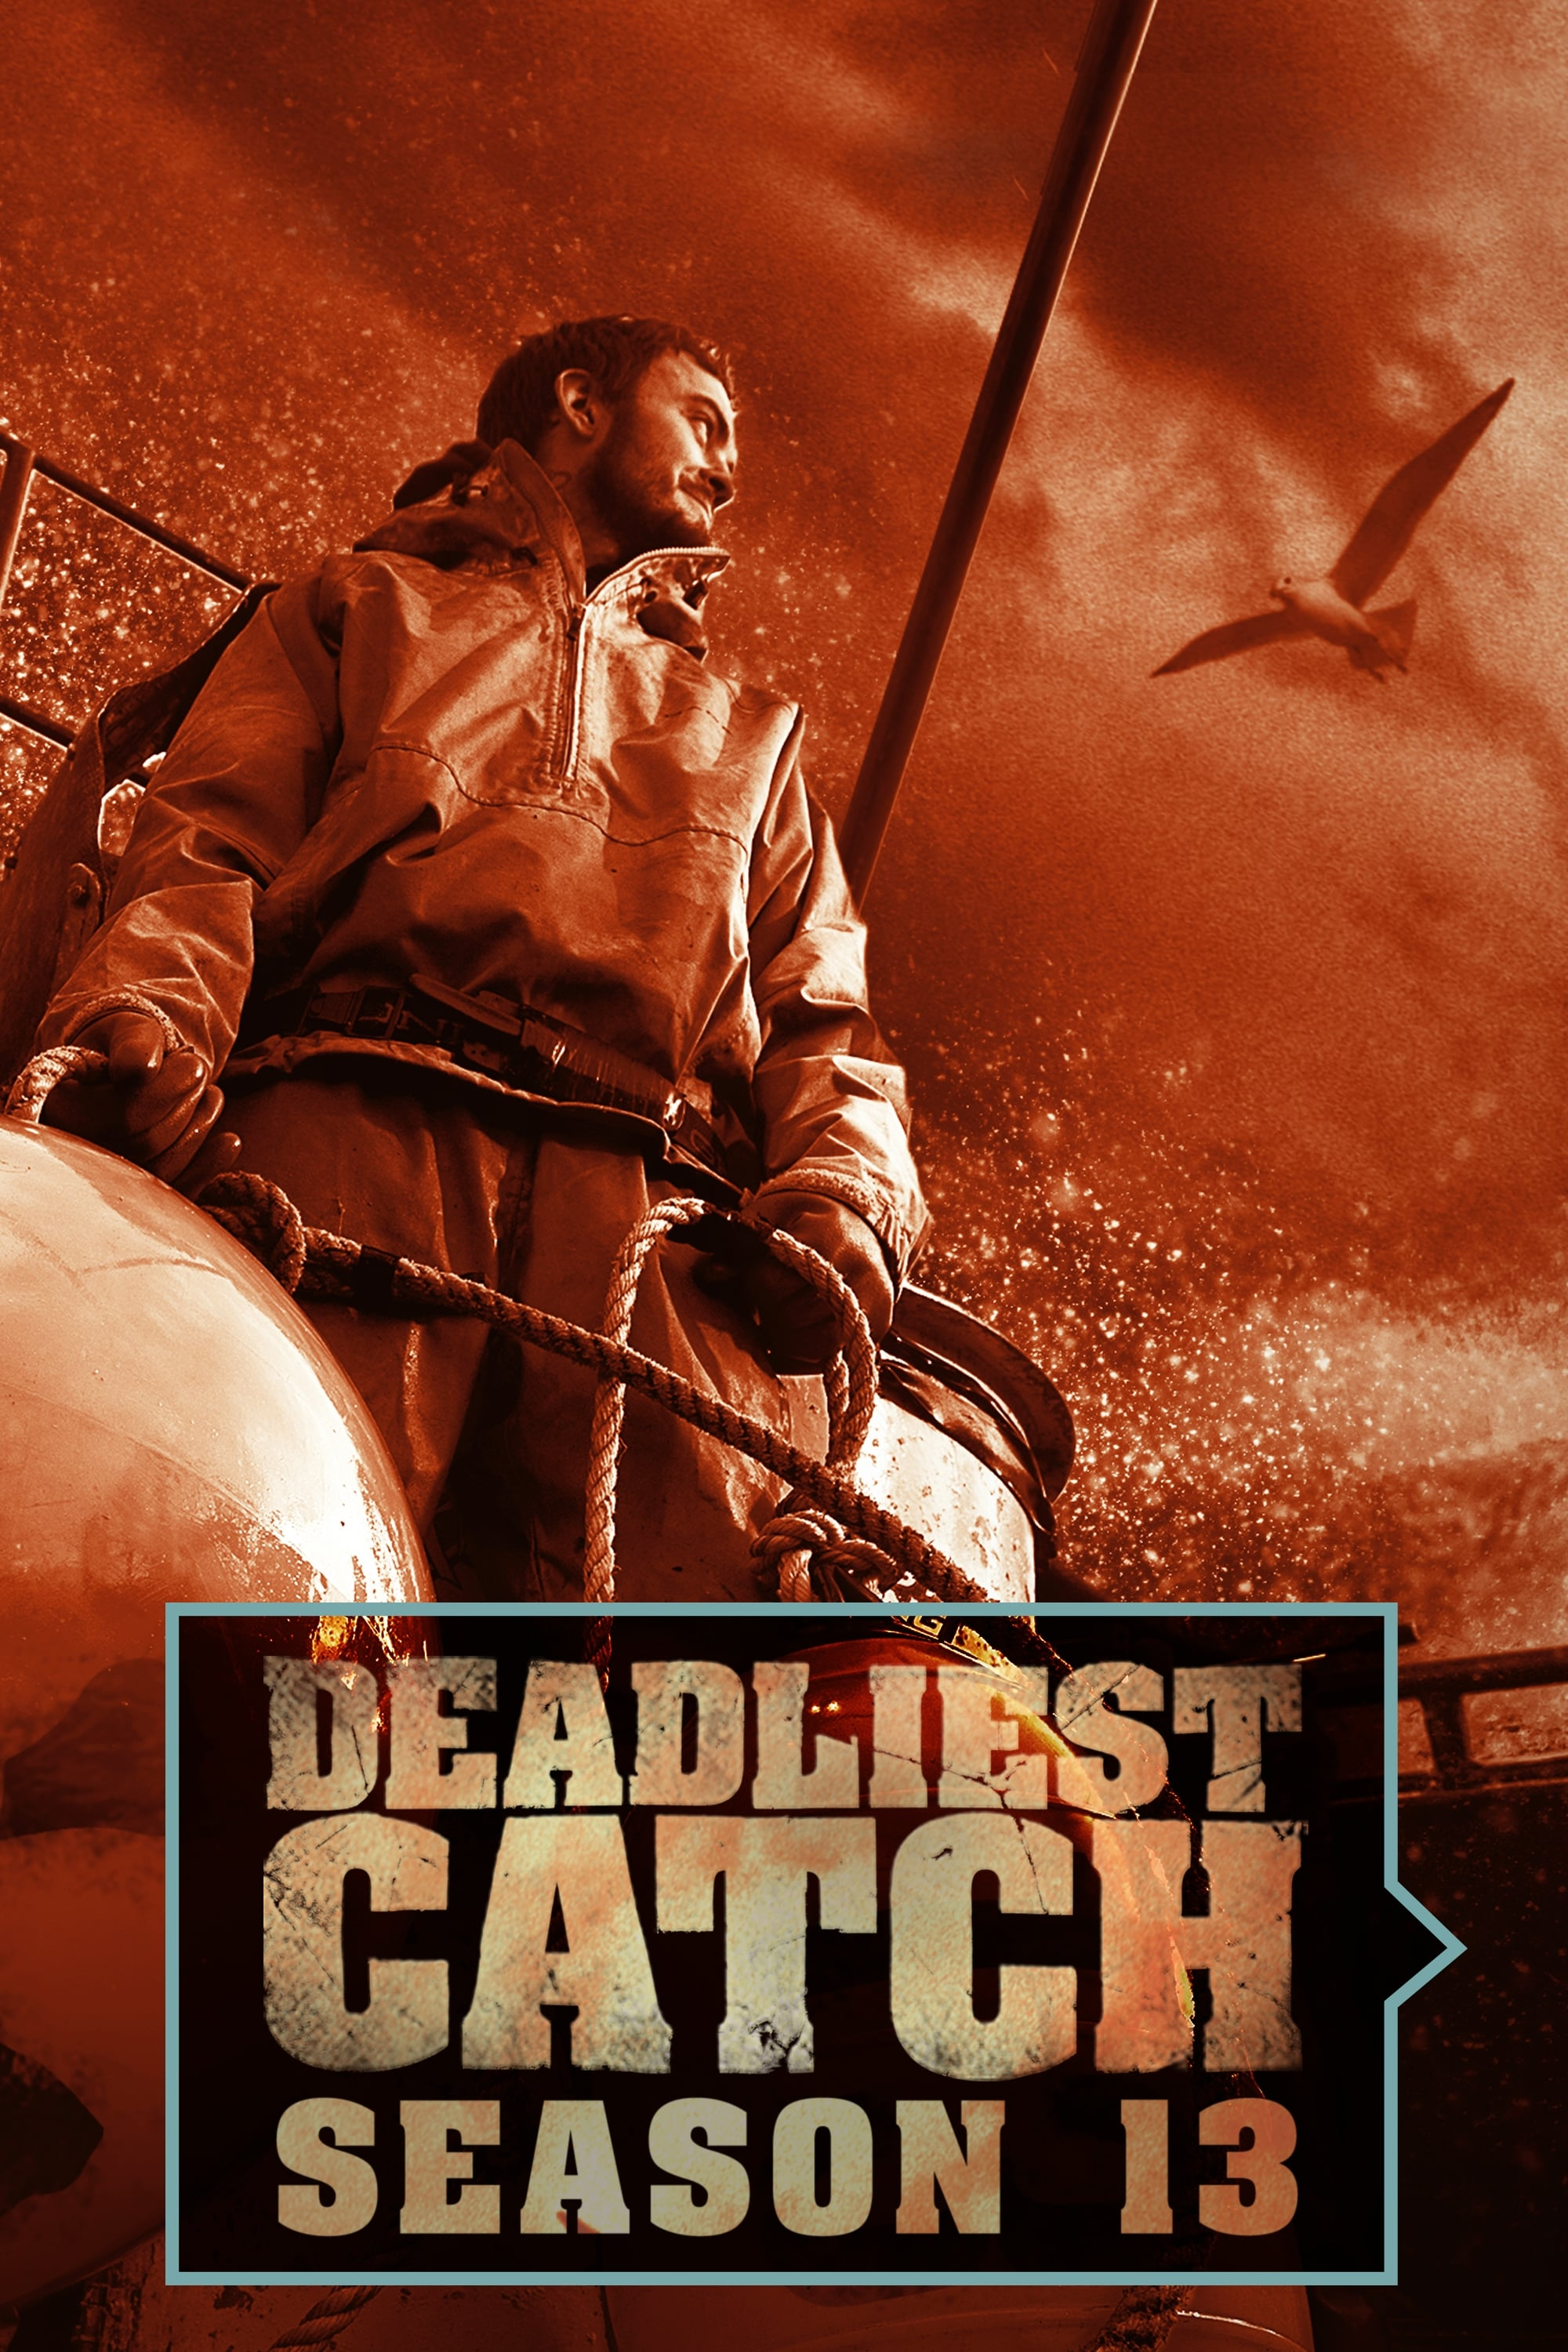 Deadliest Catch Season 13